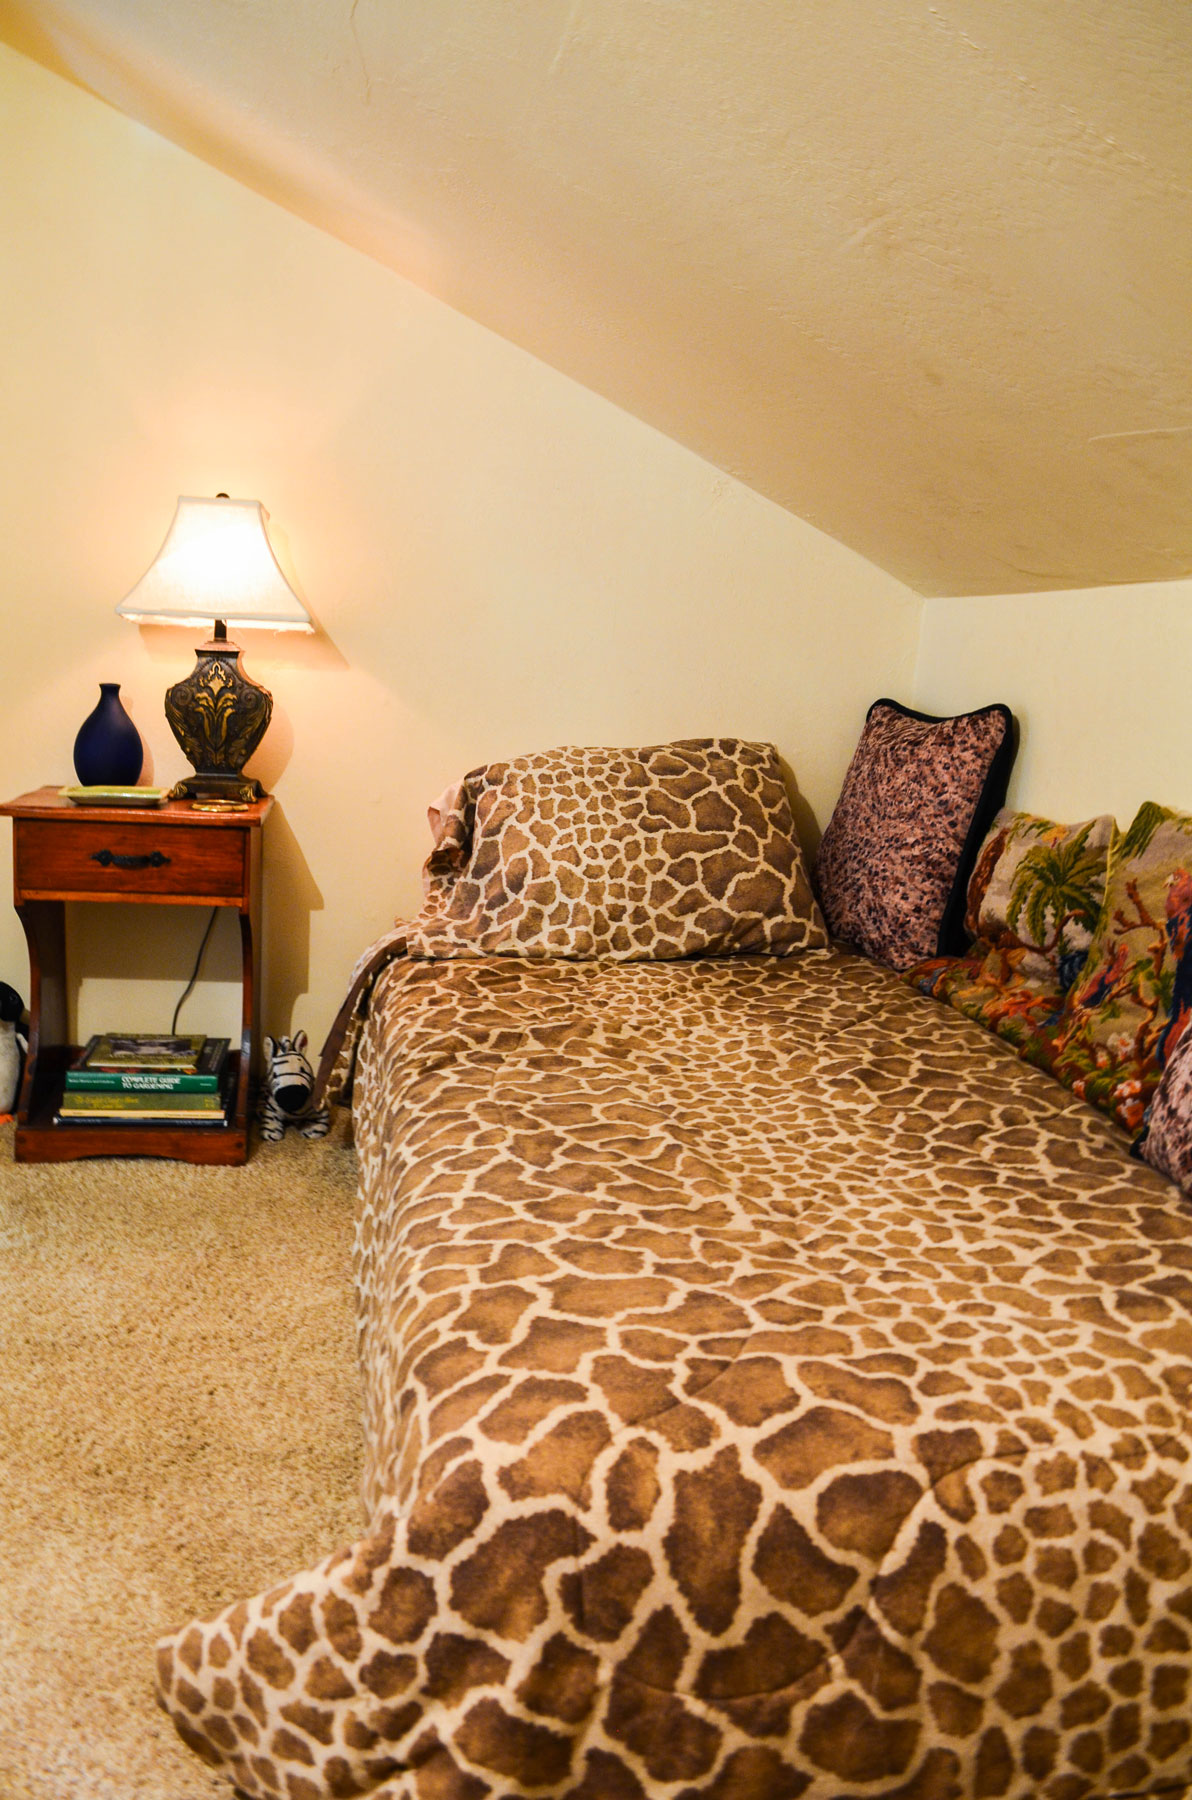 the second bedroom in the Carriage House at B. Bryan Perserve in Point Arena, CA